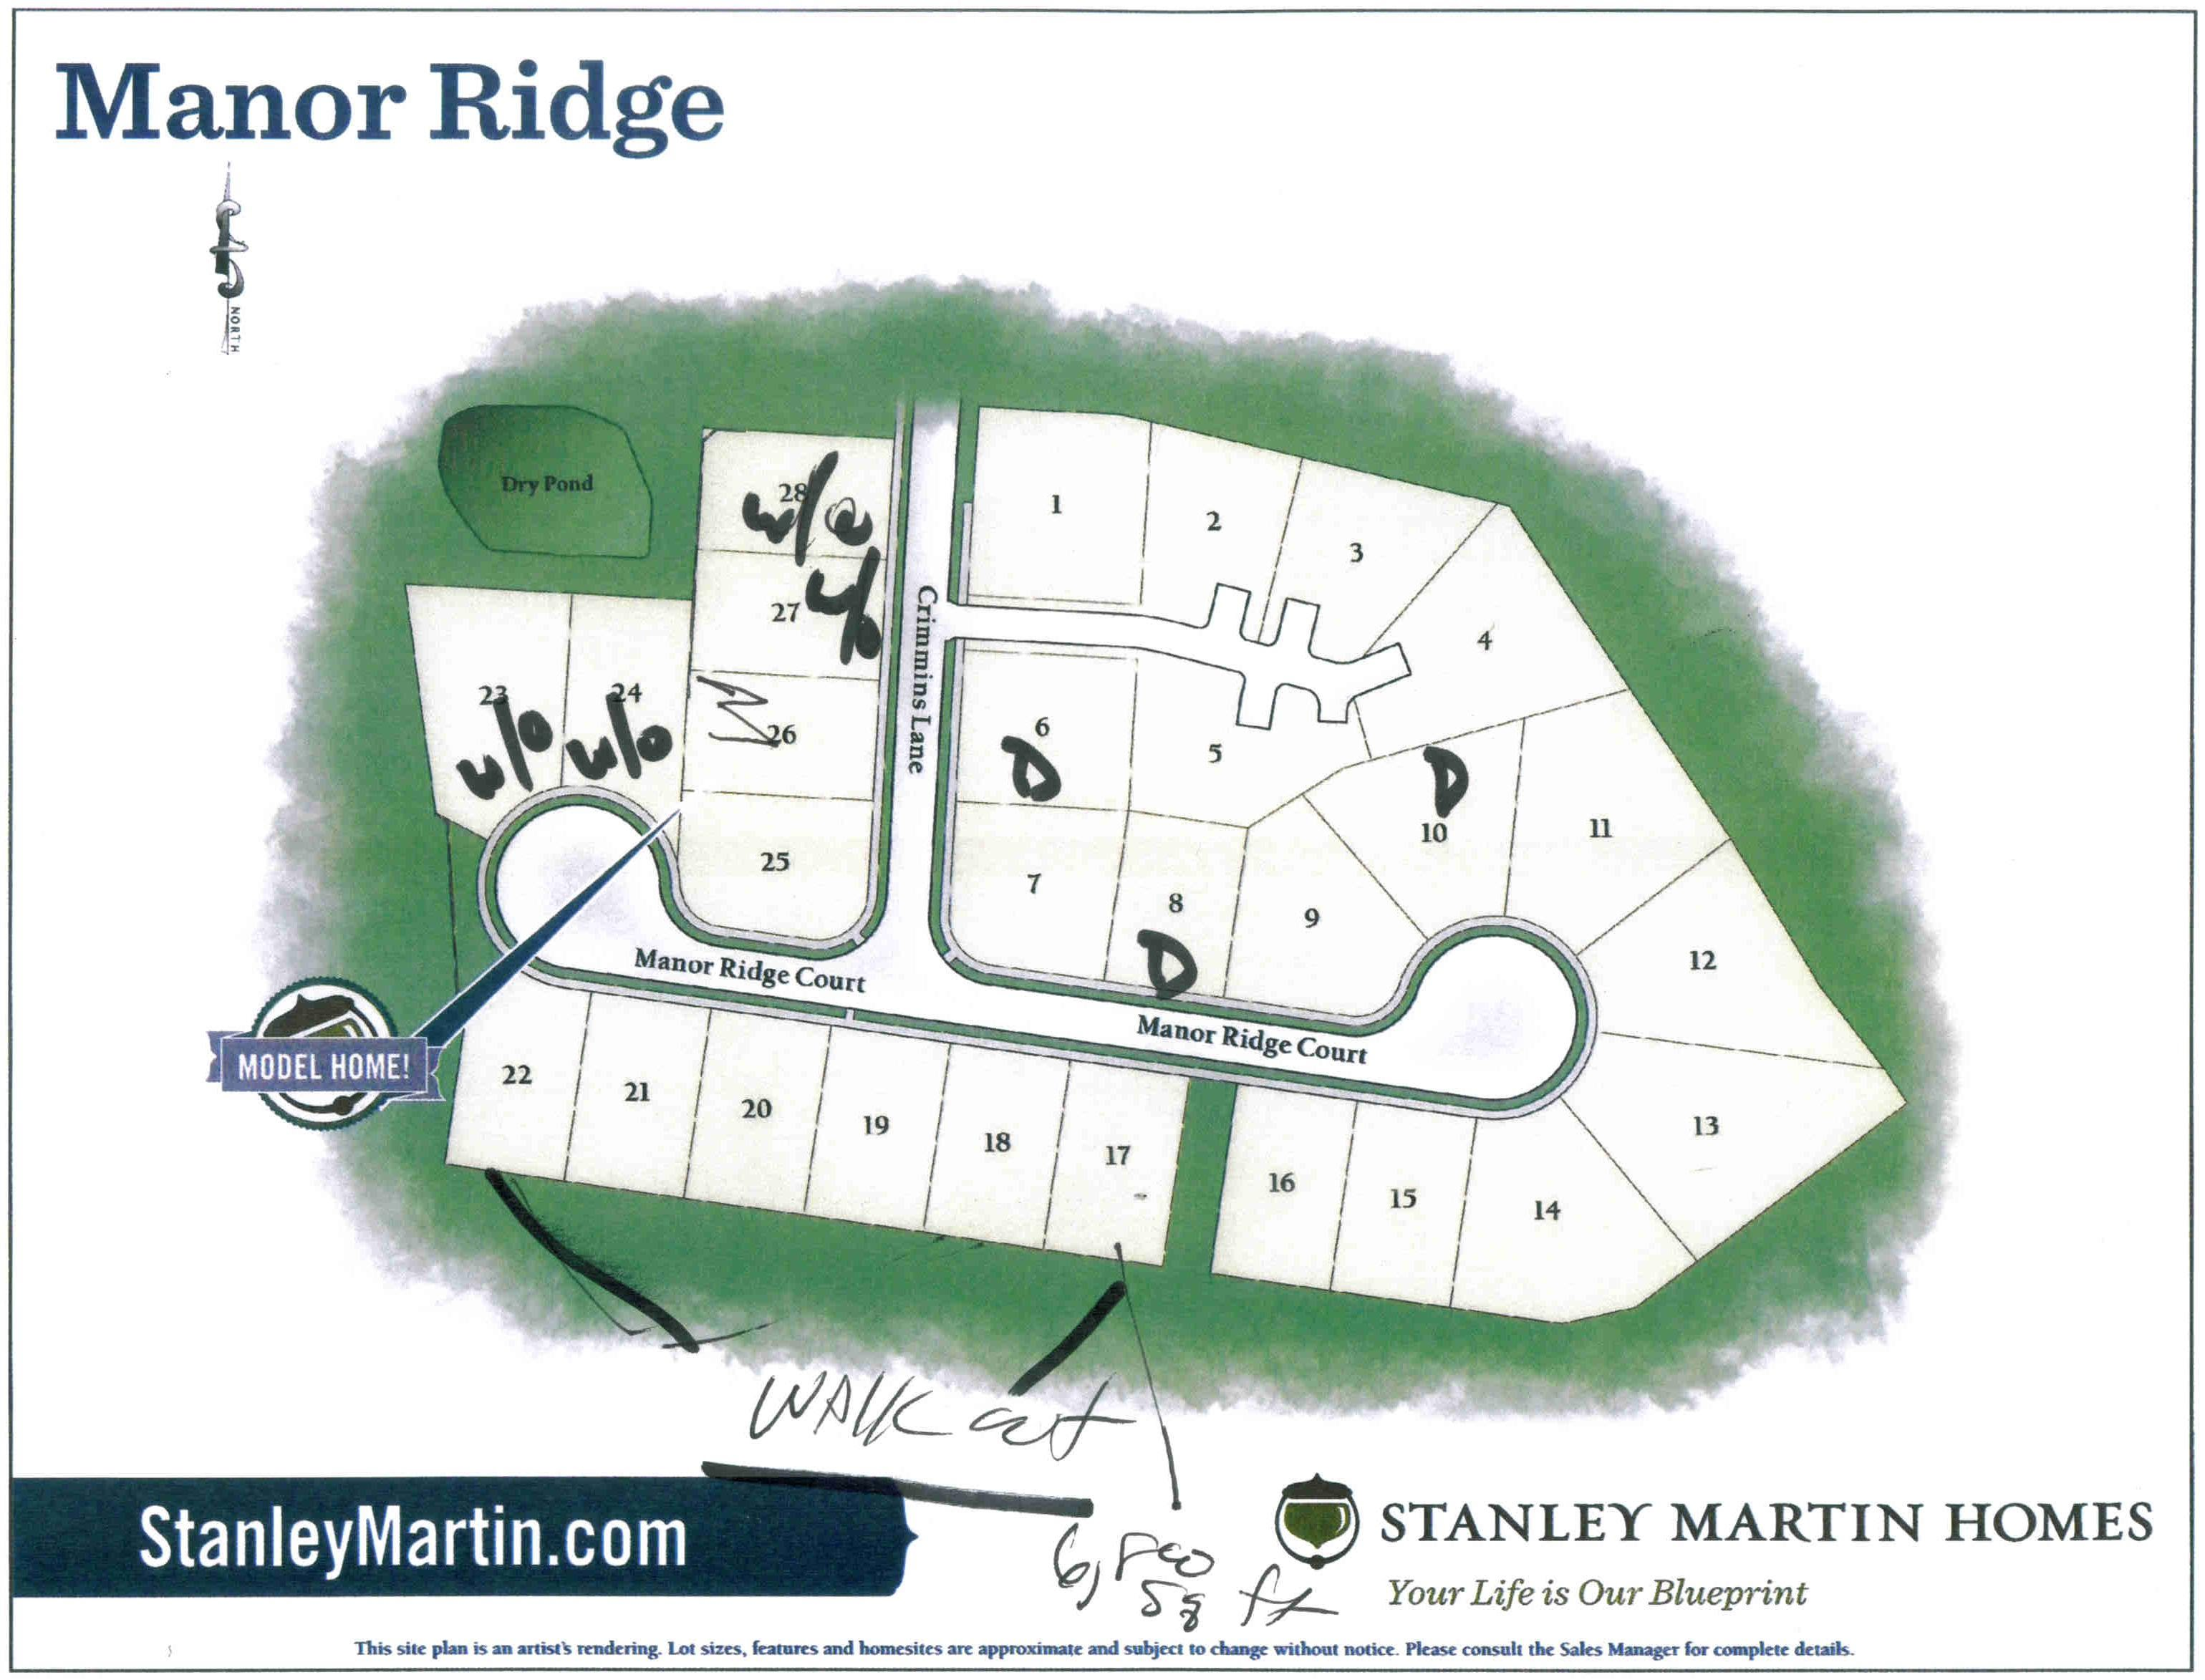 Ridge Manor - Site Map (subject to change)